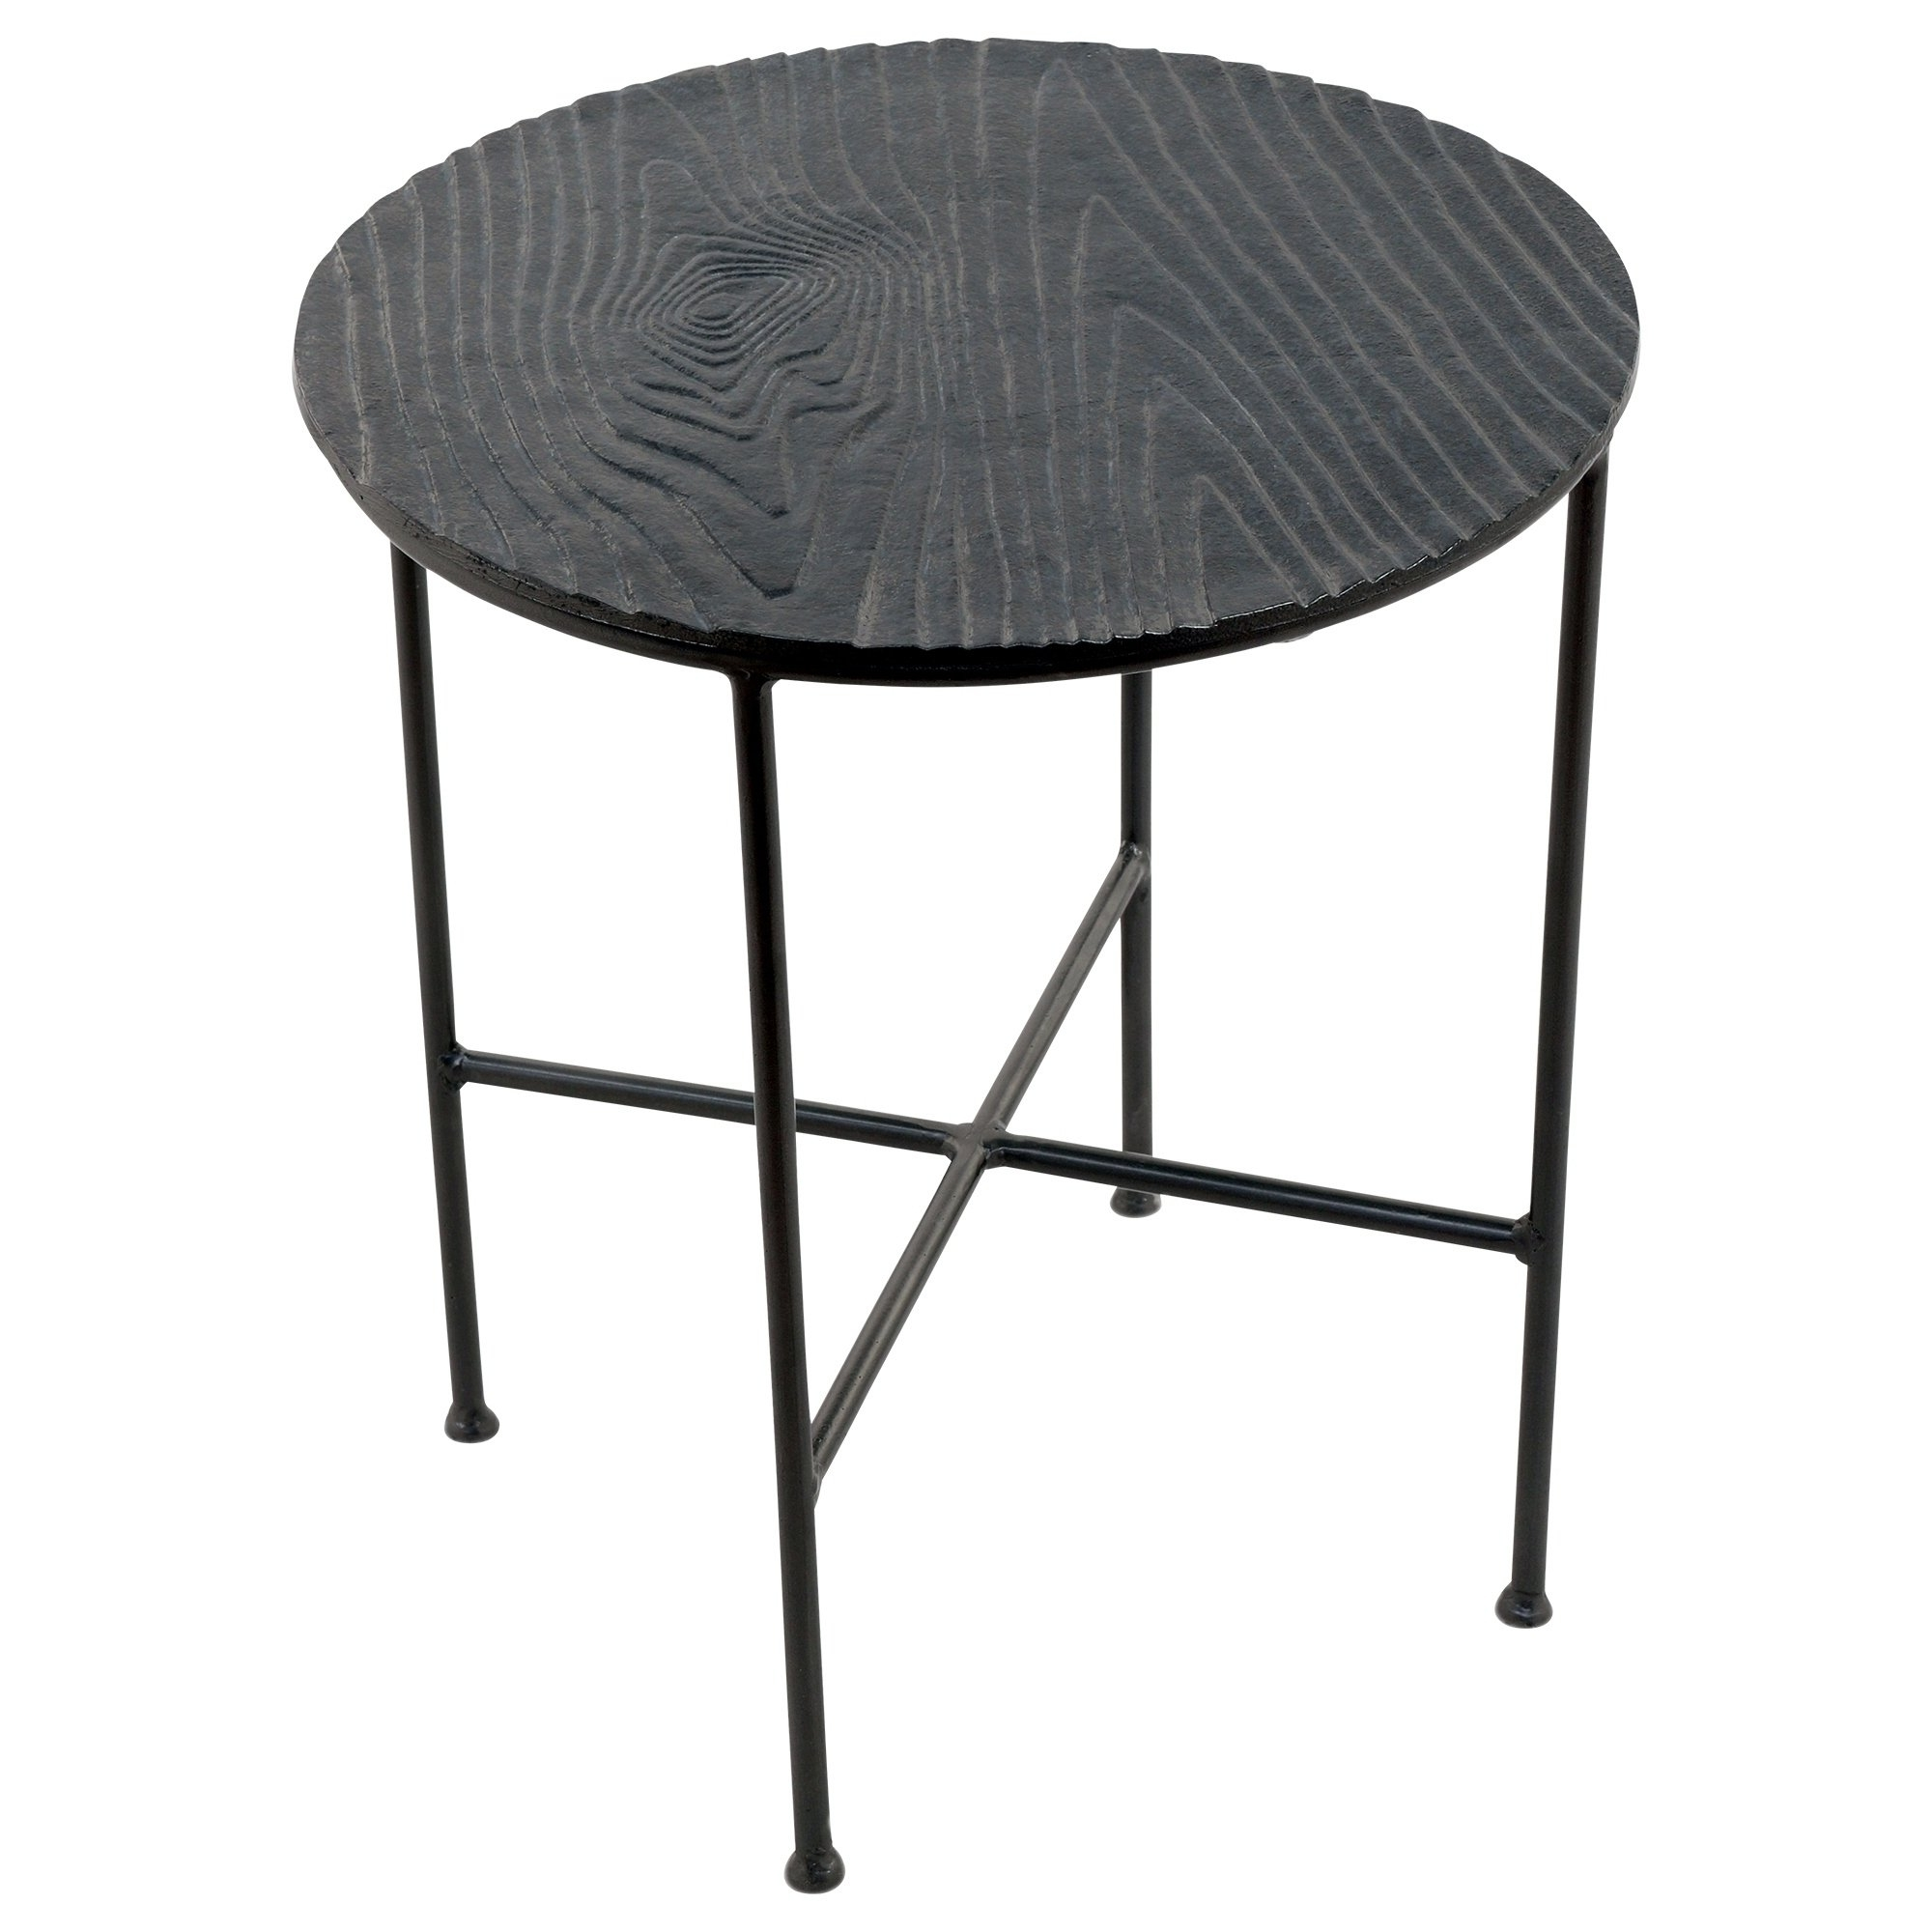 Preferred Bale Rustic Grey Round Cocktail Tables With Storage Throughout Shop Renwil Bale Grey Aluminum Round Accent Table – Free Shipping (View 15 of 20)